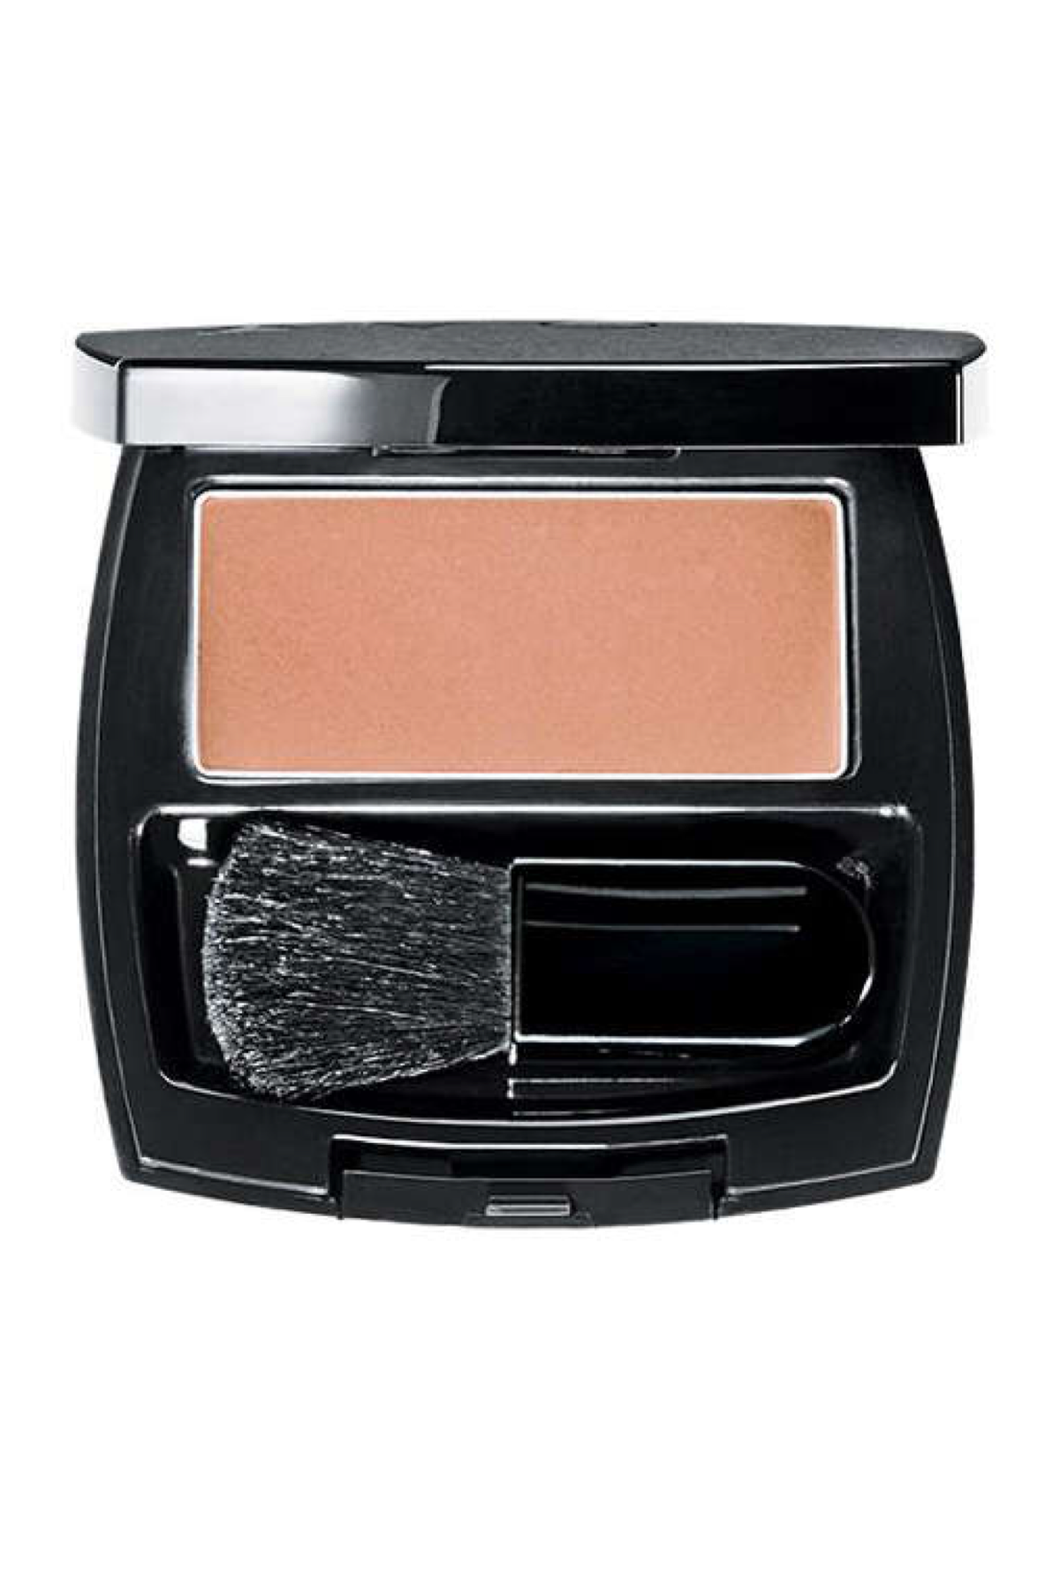 Golden Glow Luminous Blush Compact